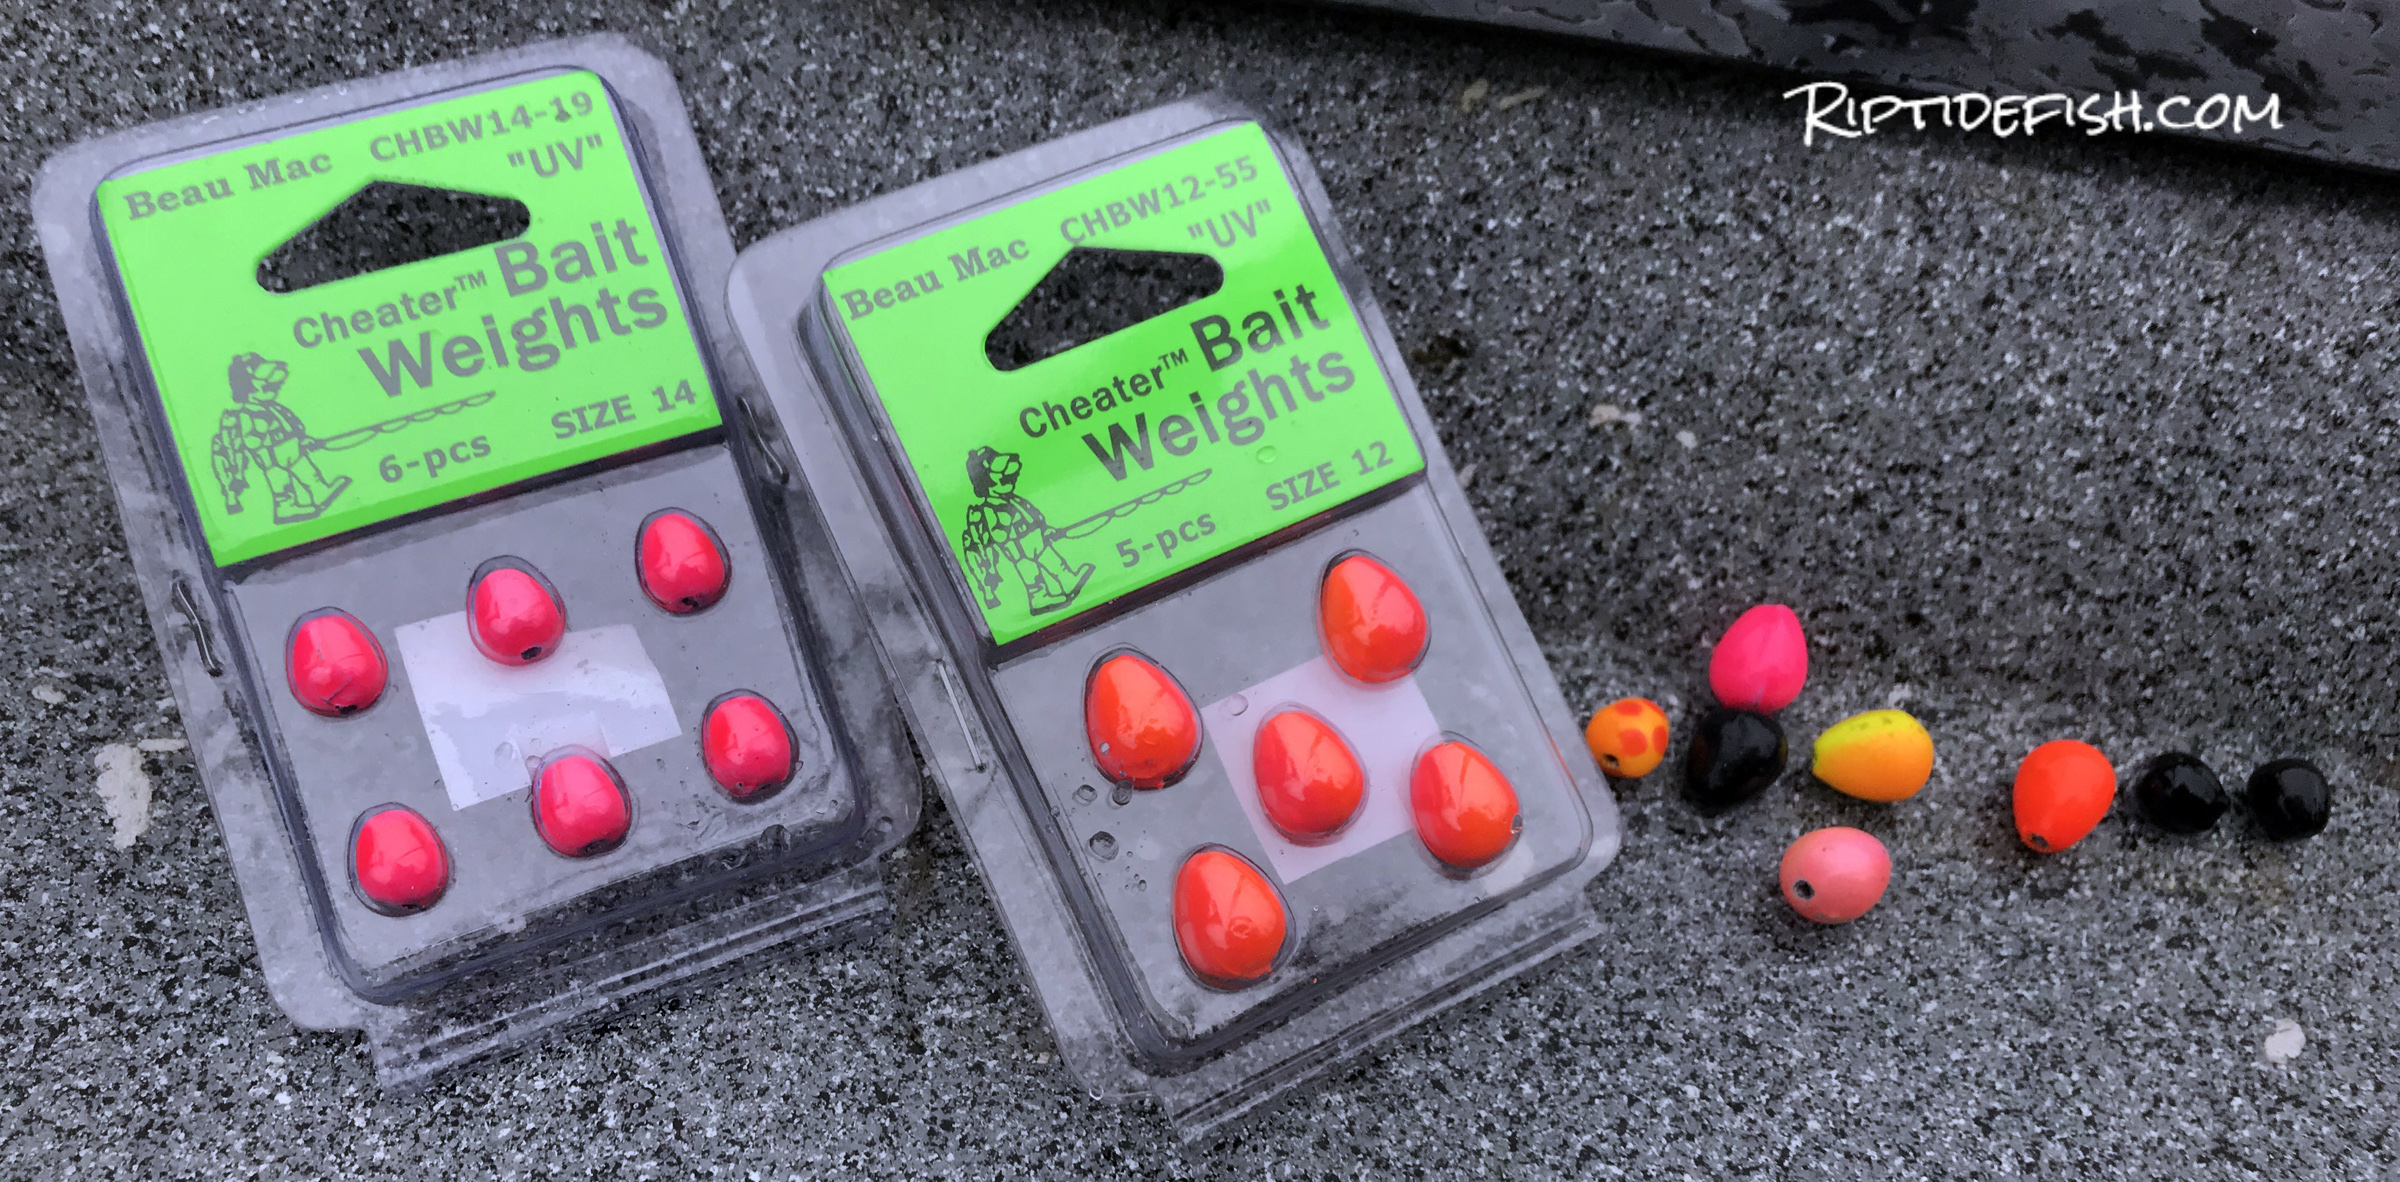 Beau Mac Bait Weights are a great addition when float fishing with bait, Pink Worms or yarn.